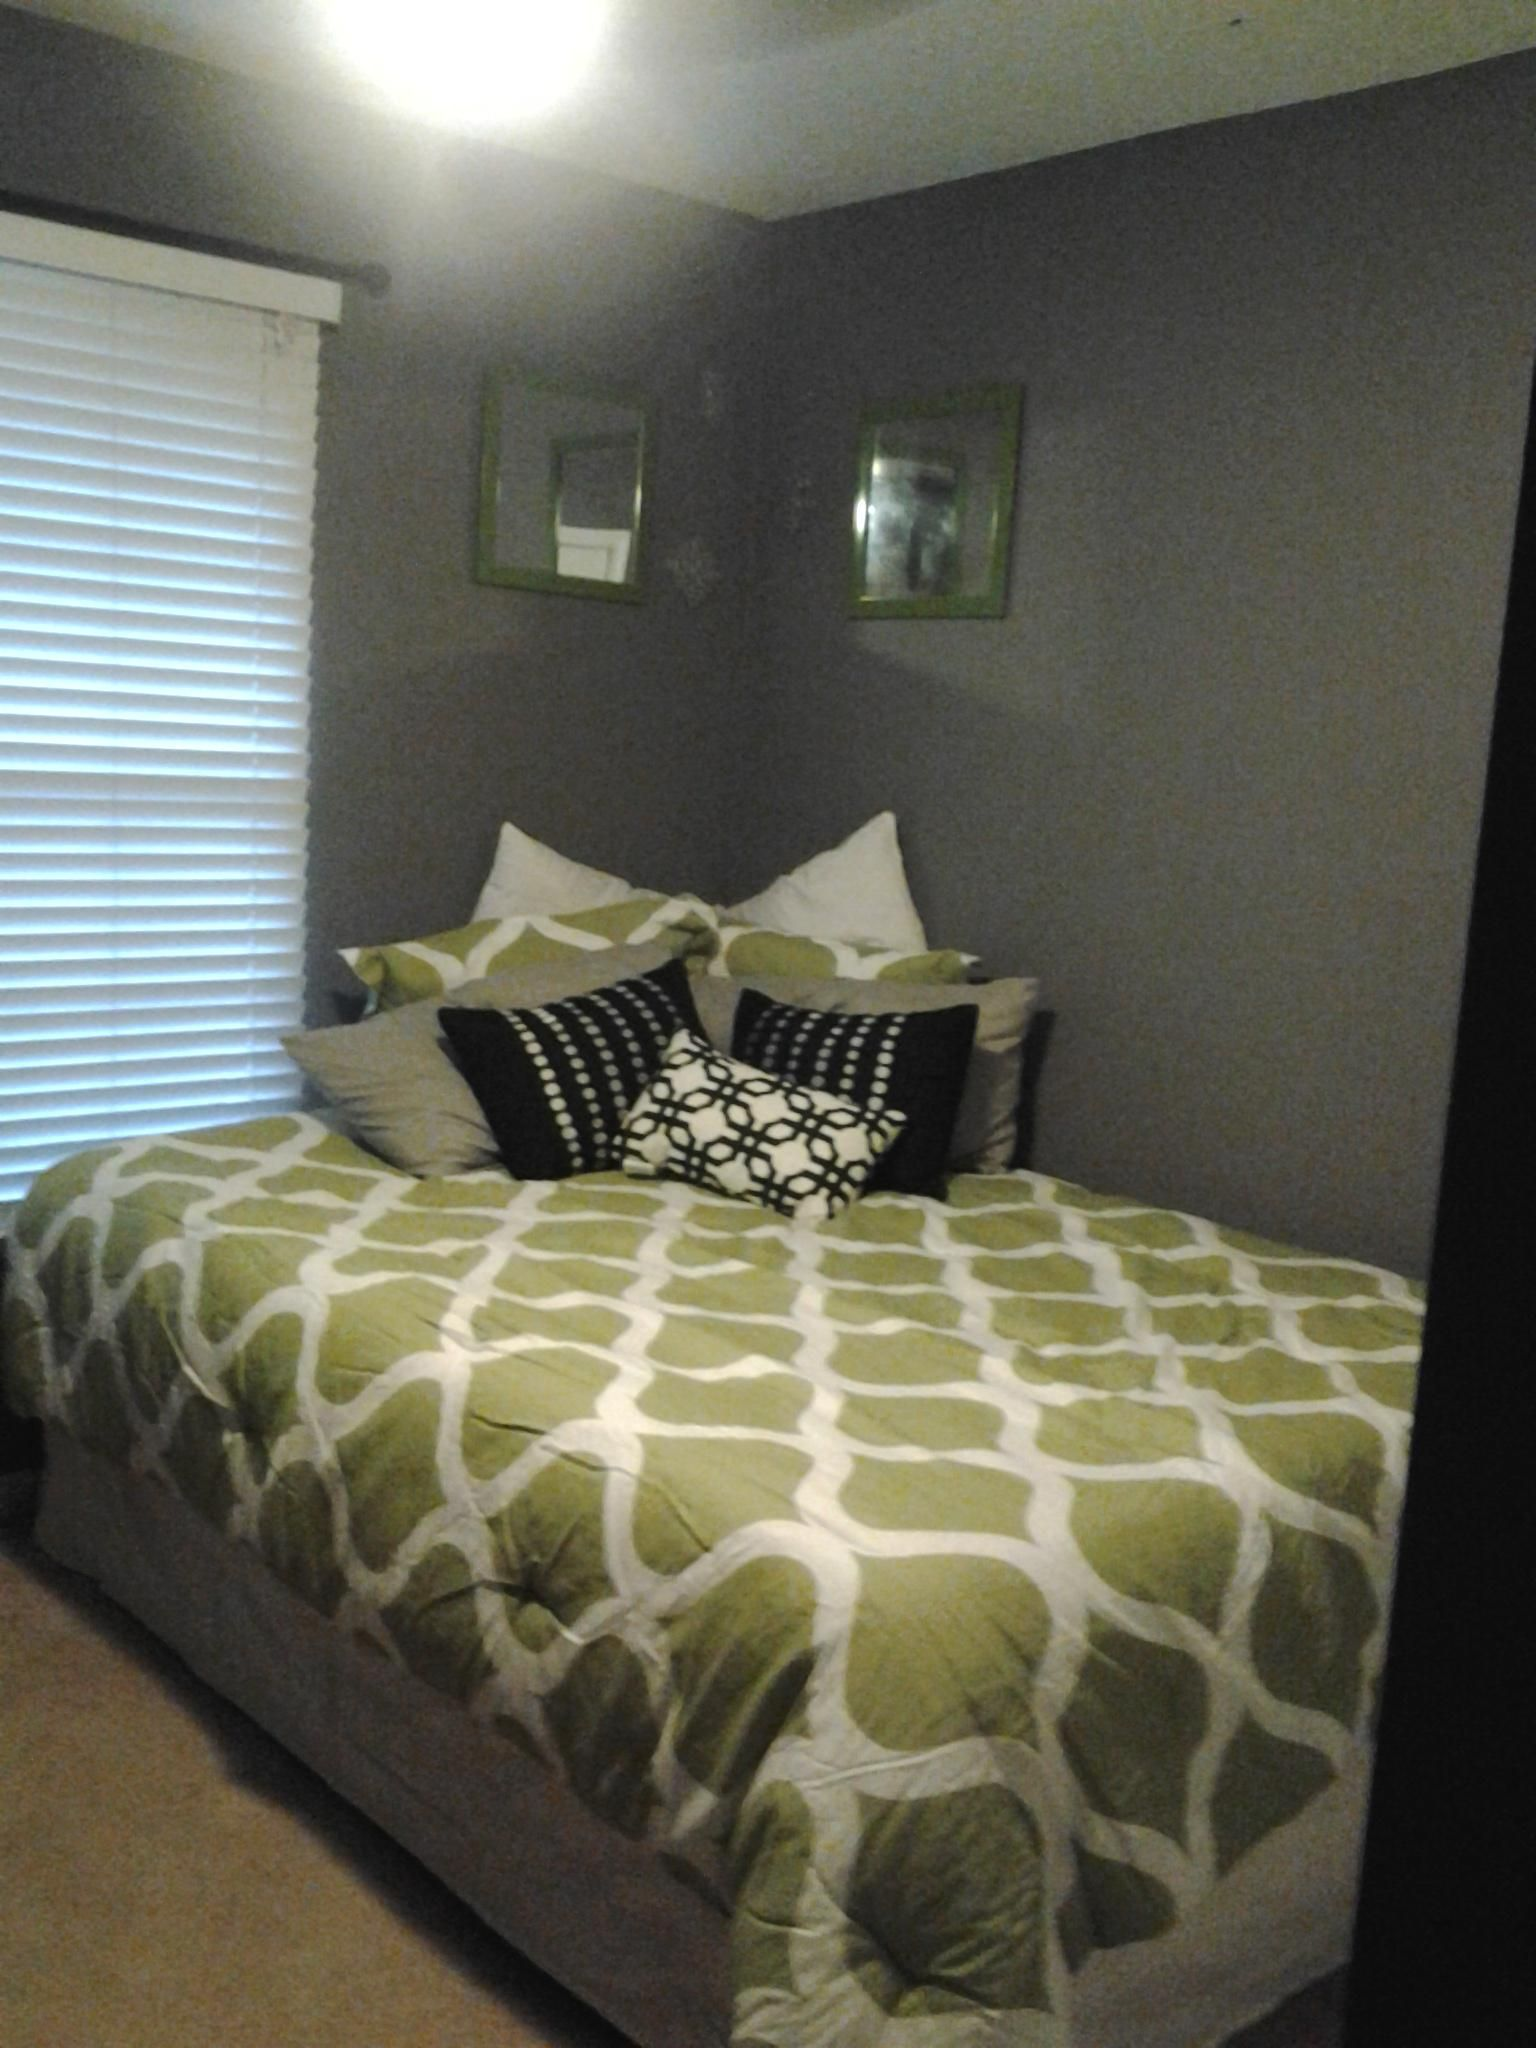 Bed in guest room/ craft room | In and around the house | Pinterest